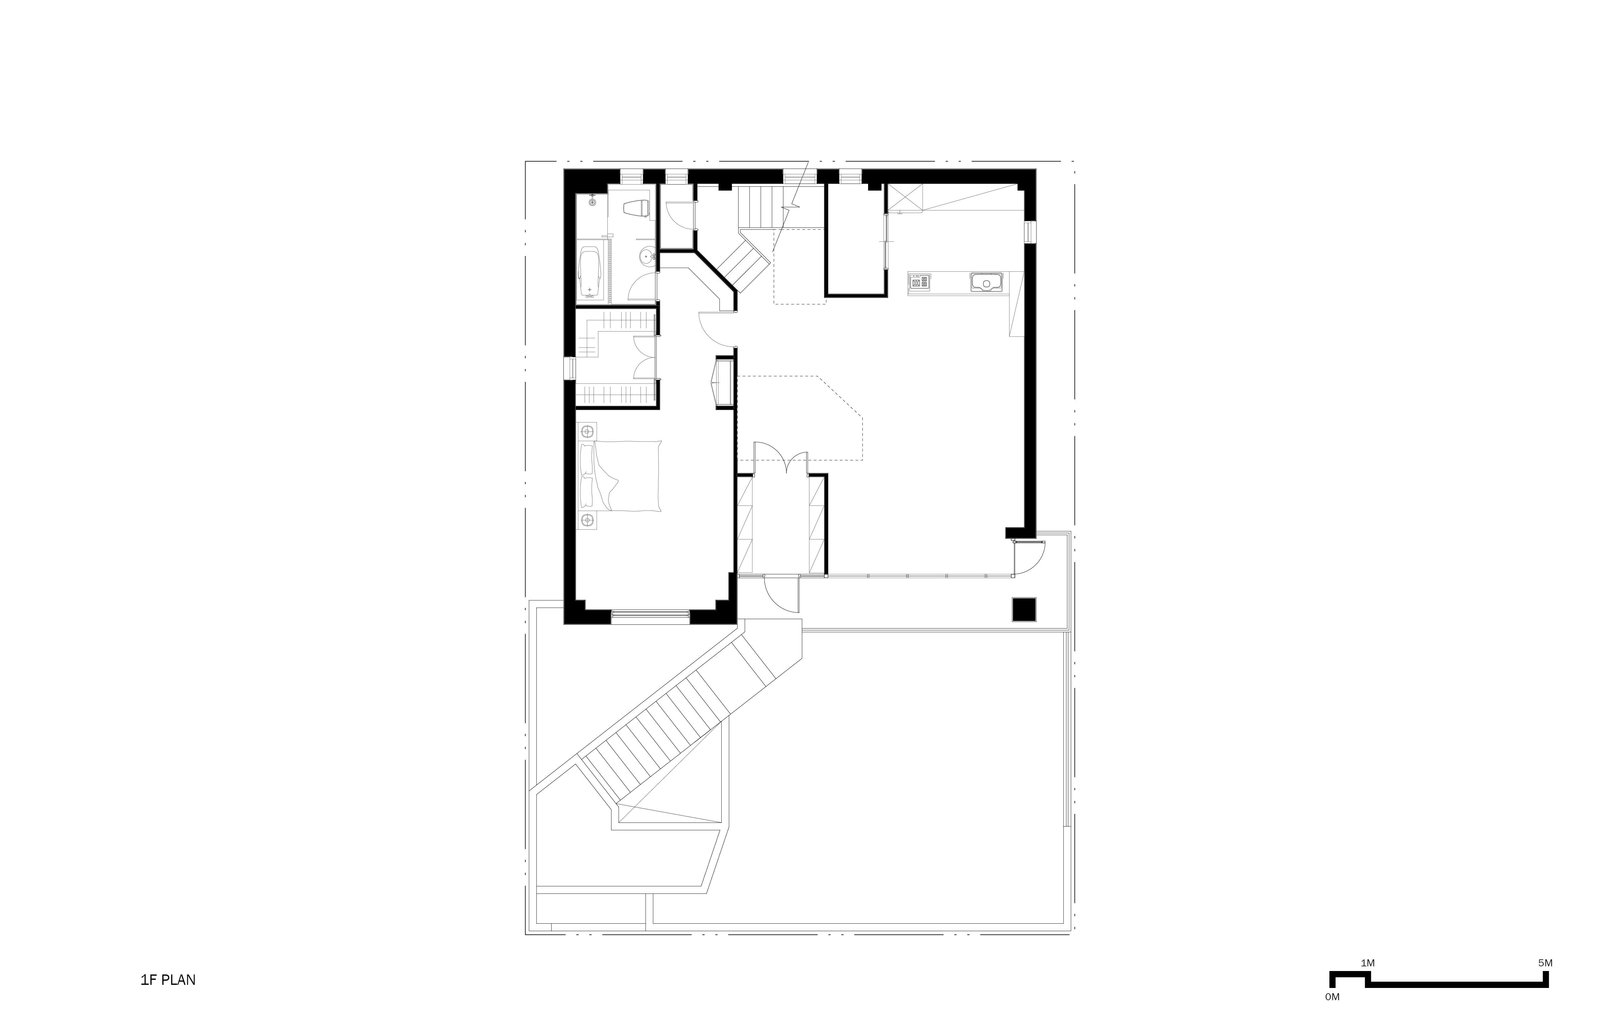 1F Plan  A House by Chang Kyu Lee